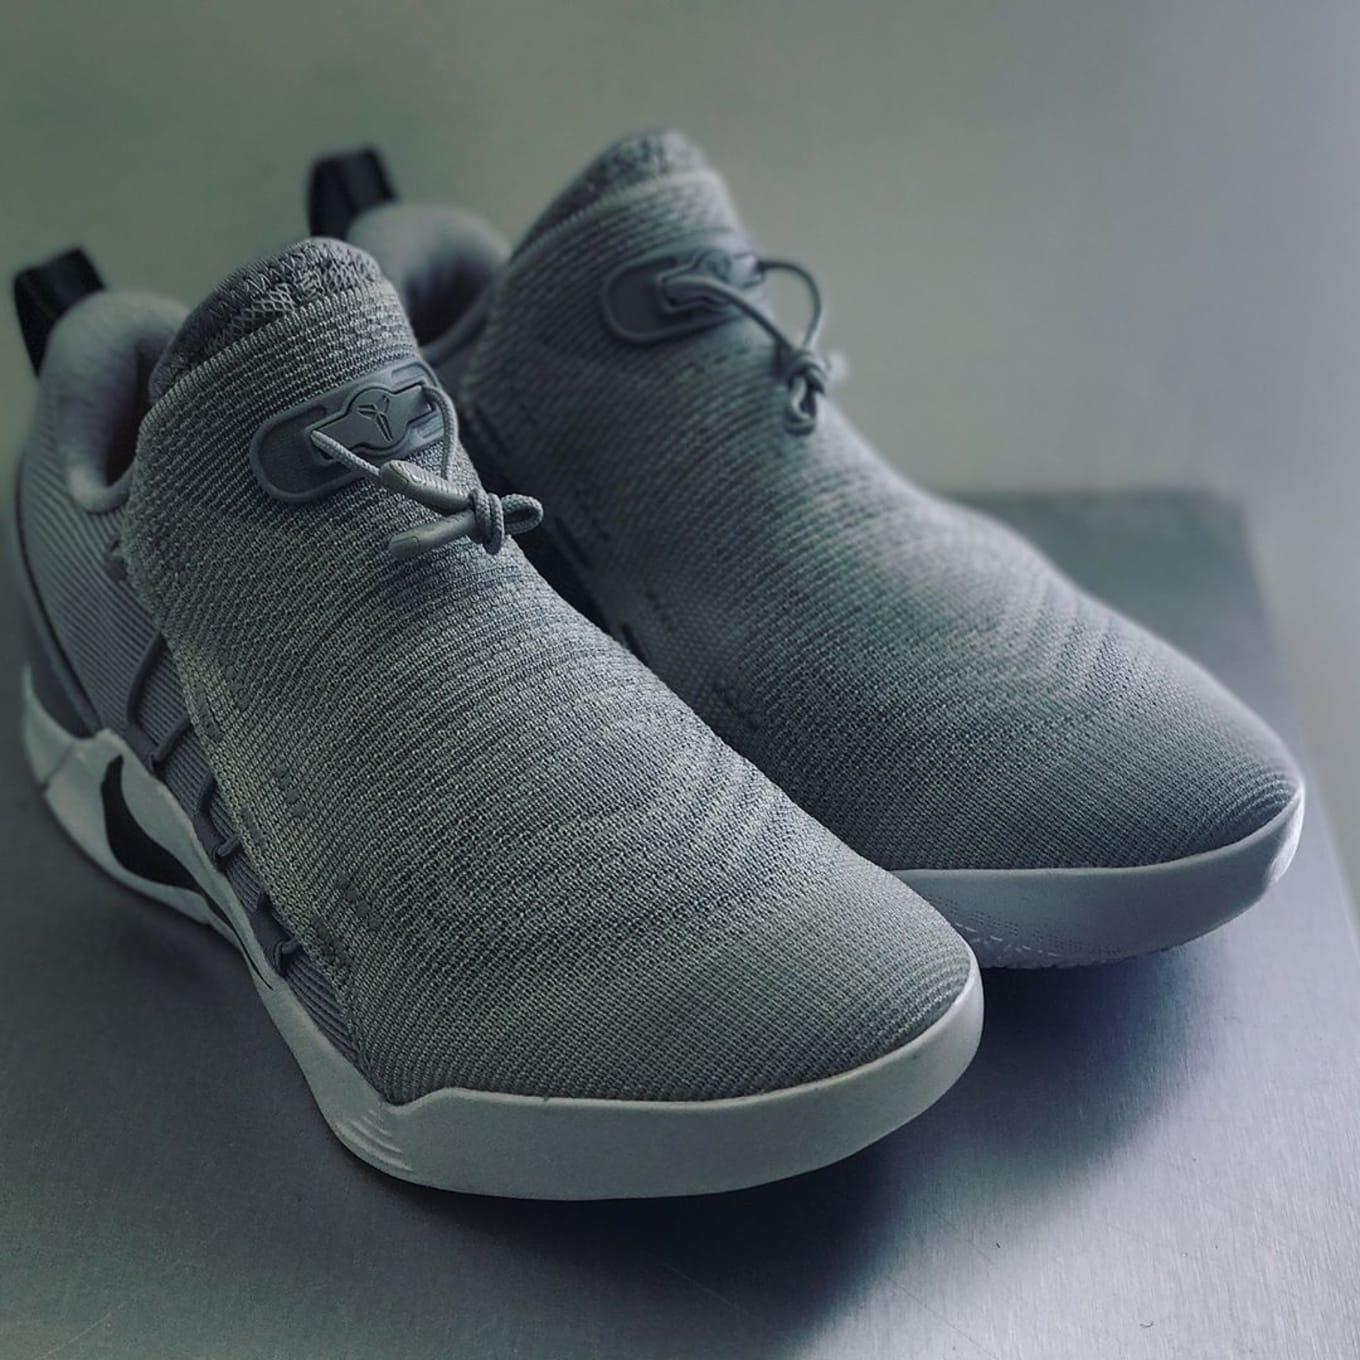 official photos e2bbf bc2b1 First look at the Kobe A.D. NXT in two colorways.